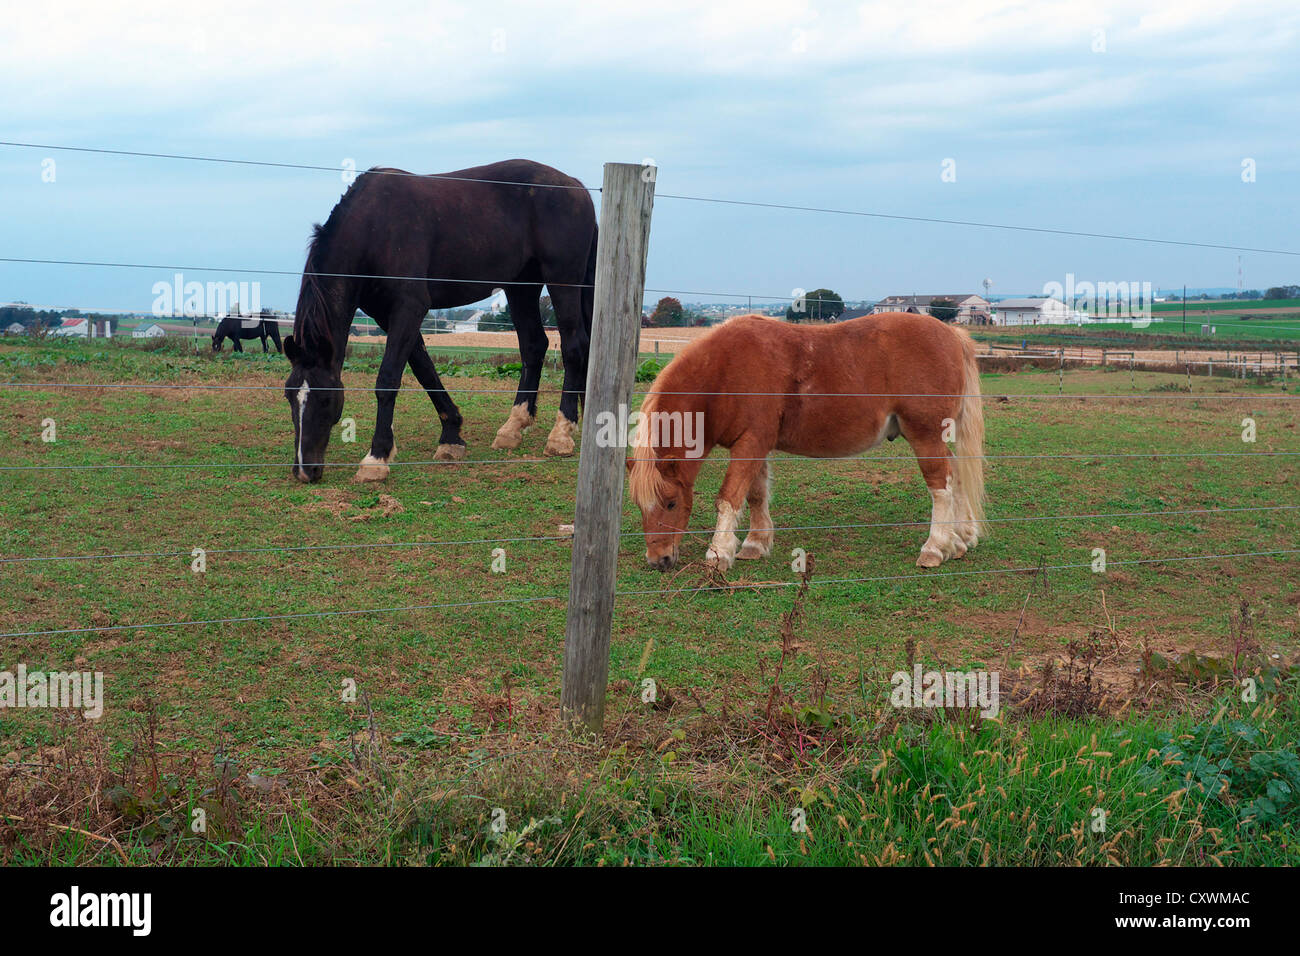 Two Horses Behind Fence Stockfotos & Two Horses Behind Fence Bilder ...